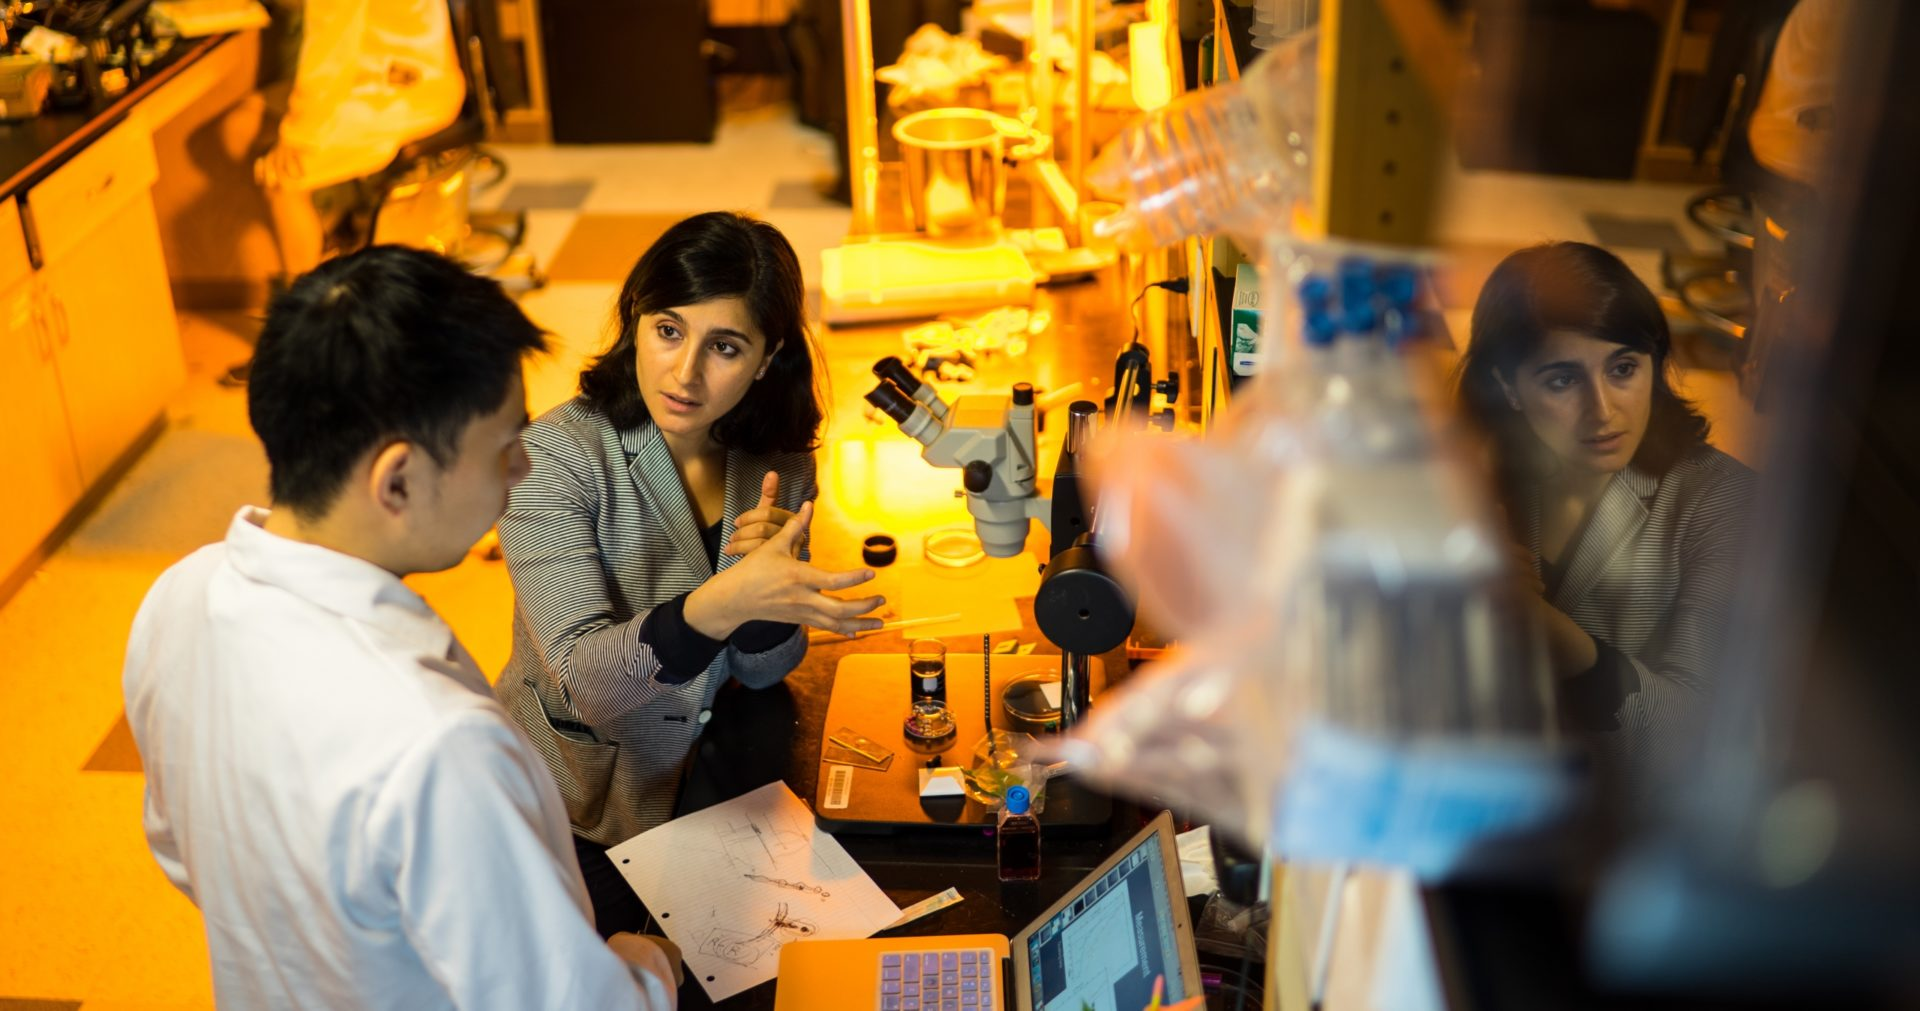 3Q with Lydia Bourouiba: How has our knowledge of the coronavirus changed since last spring